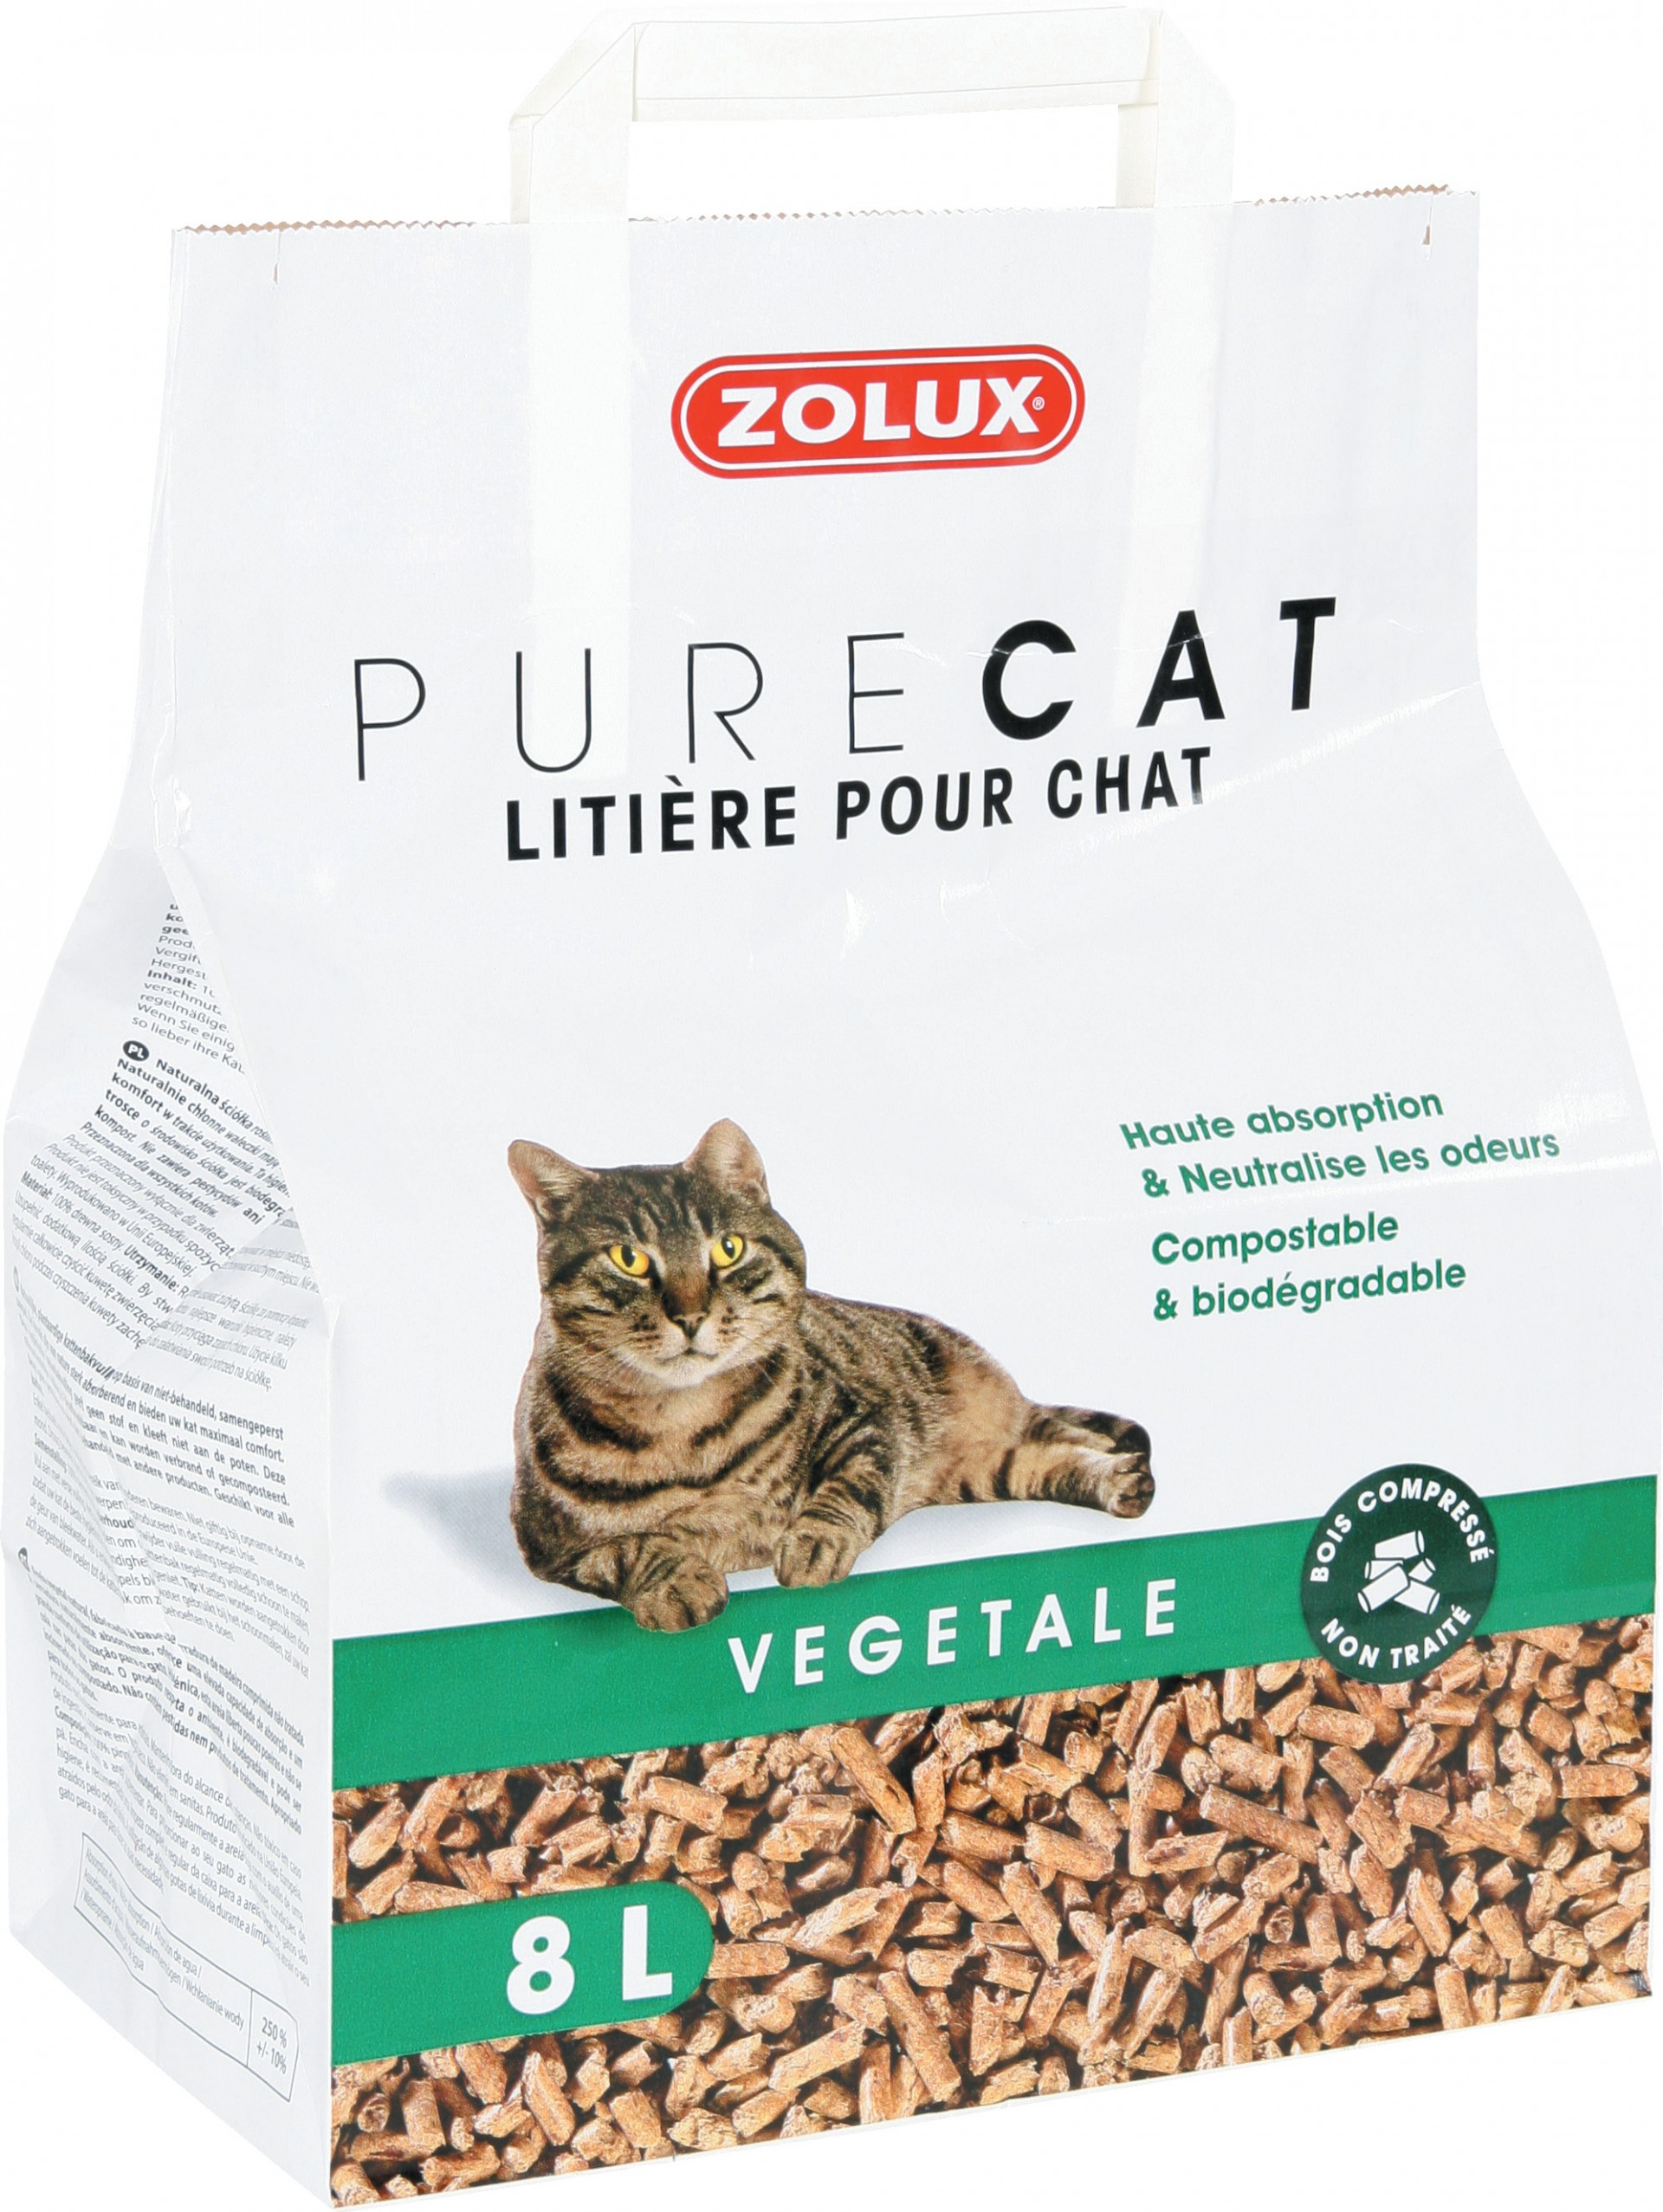 litiere vegetale chat